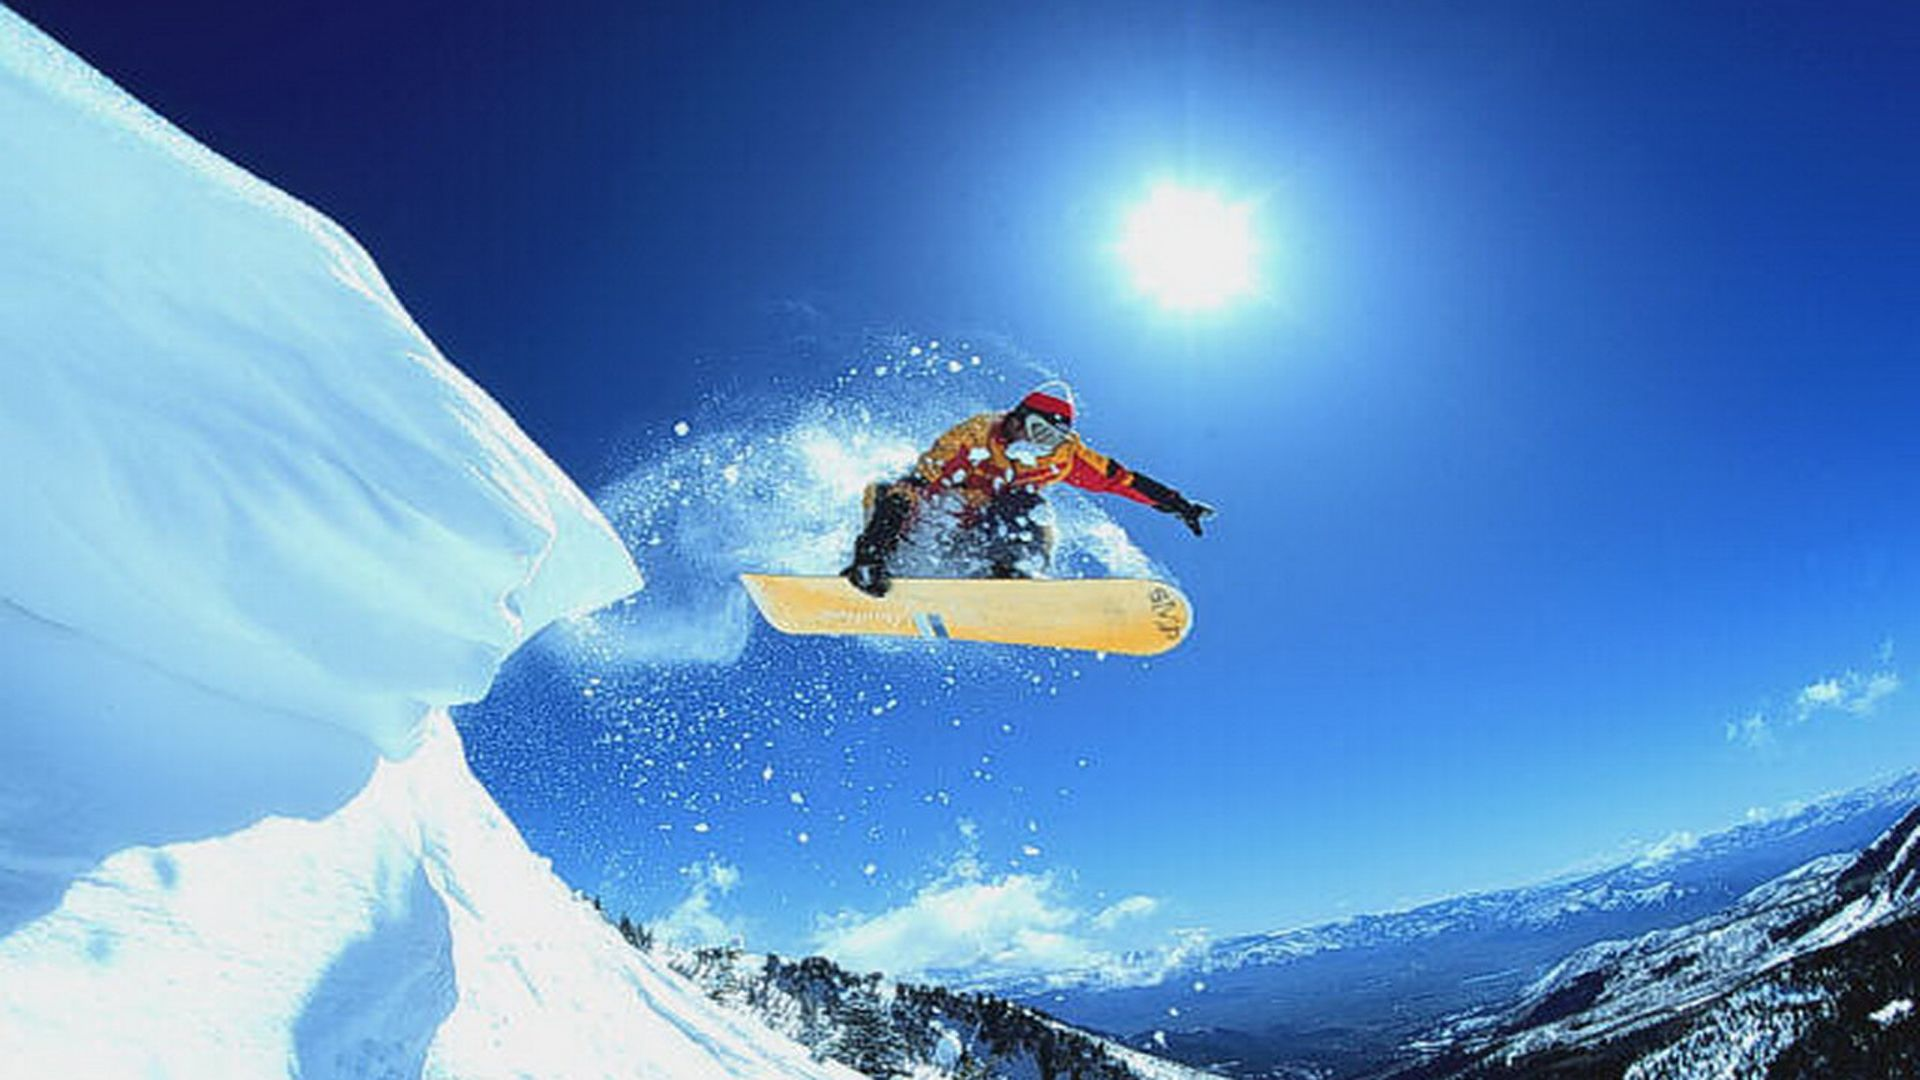 hd snowboarding wallpapers - google search | sports | pinterest